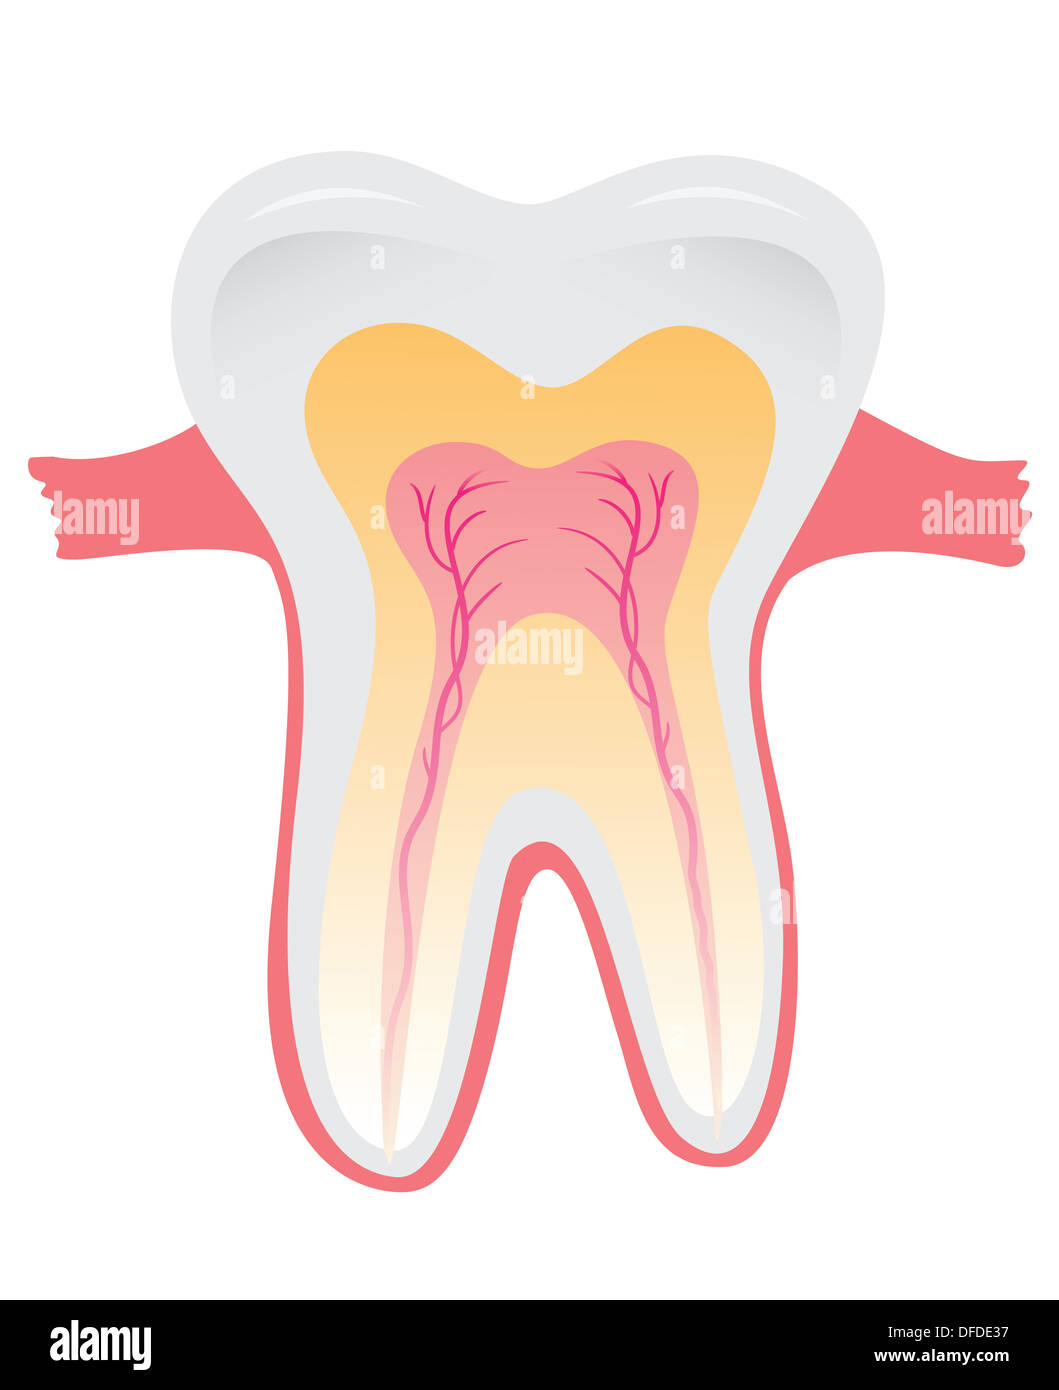 Tooth structure. Anatomy of teeth Stock Photo: 61147387 - Alamy